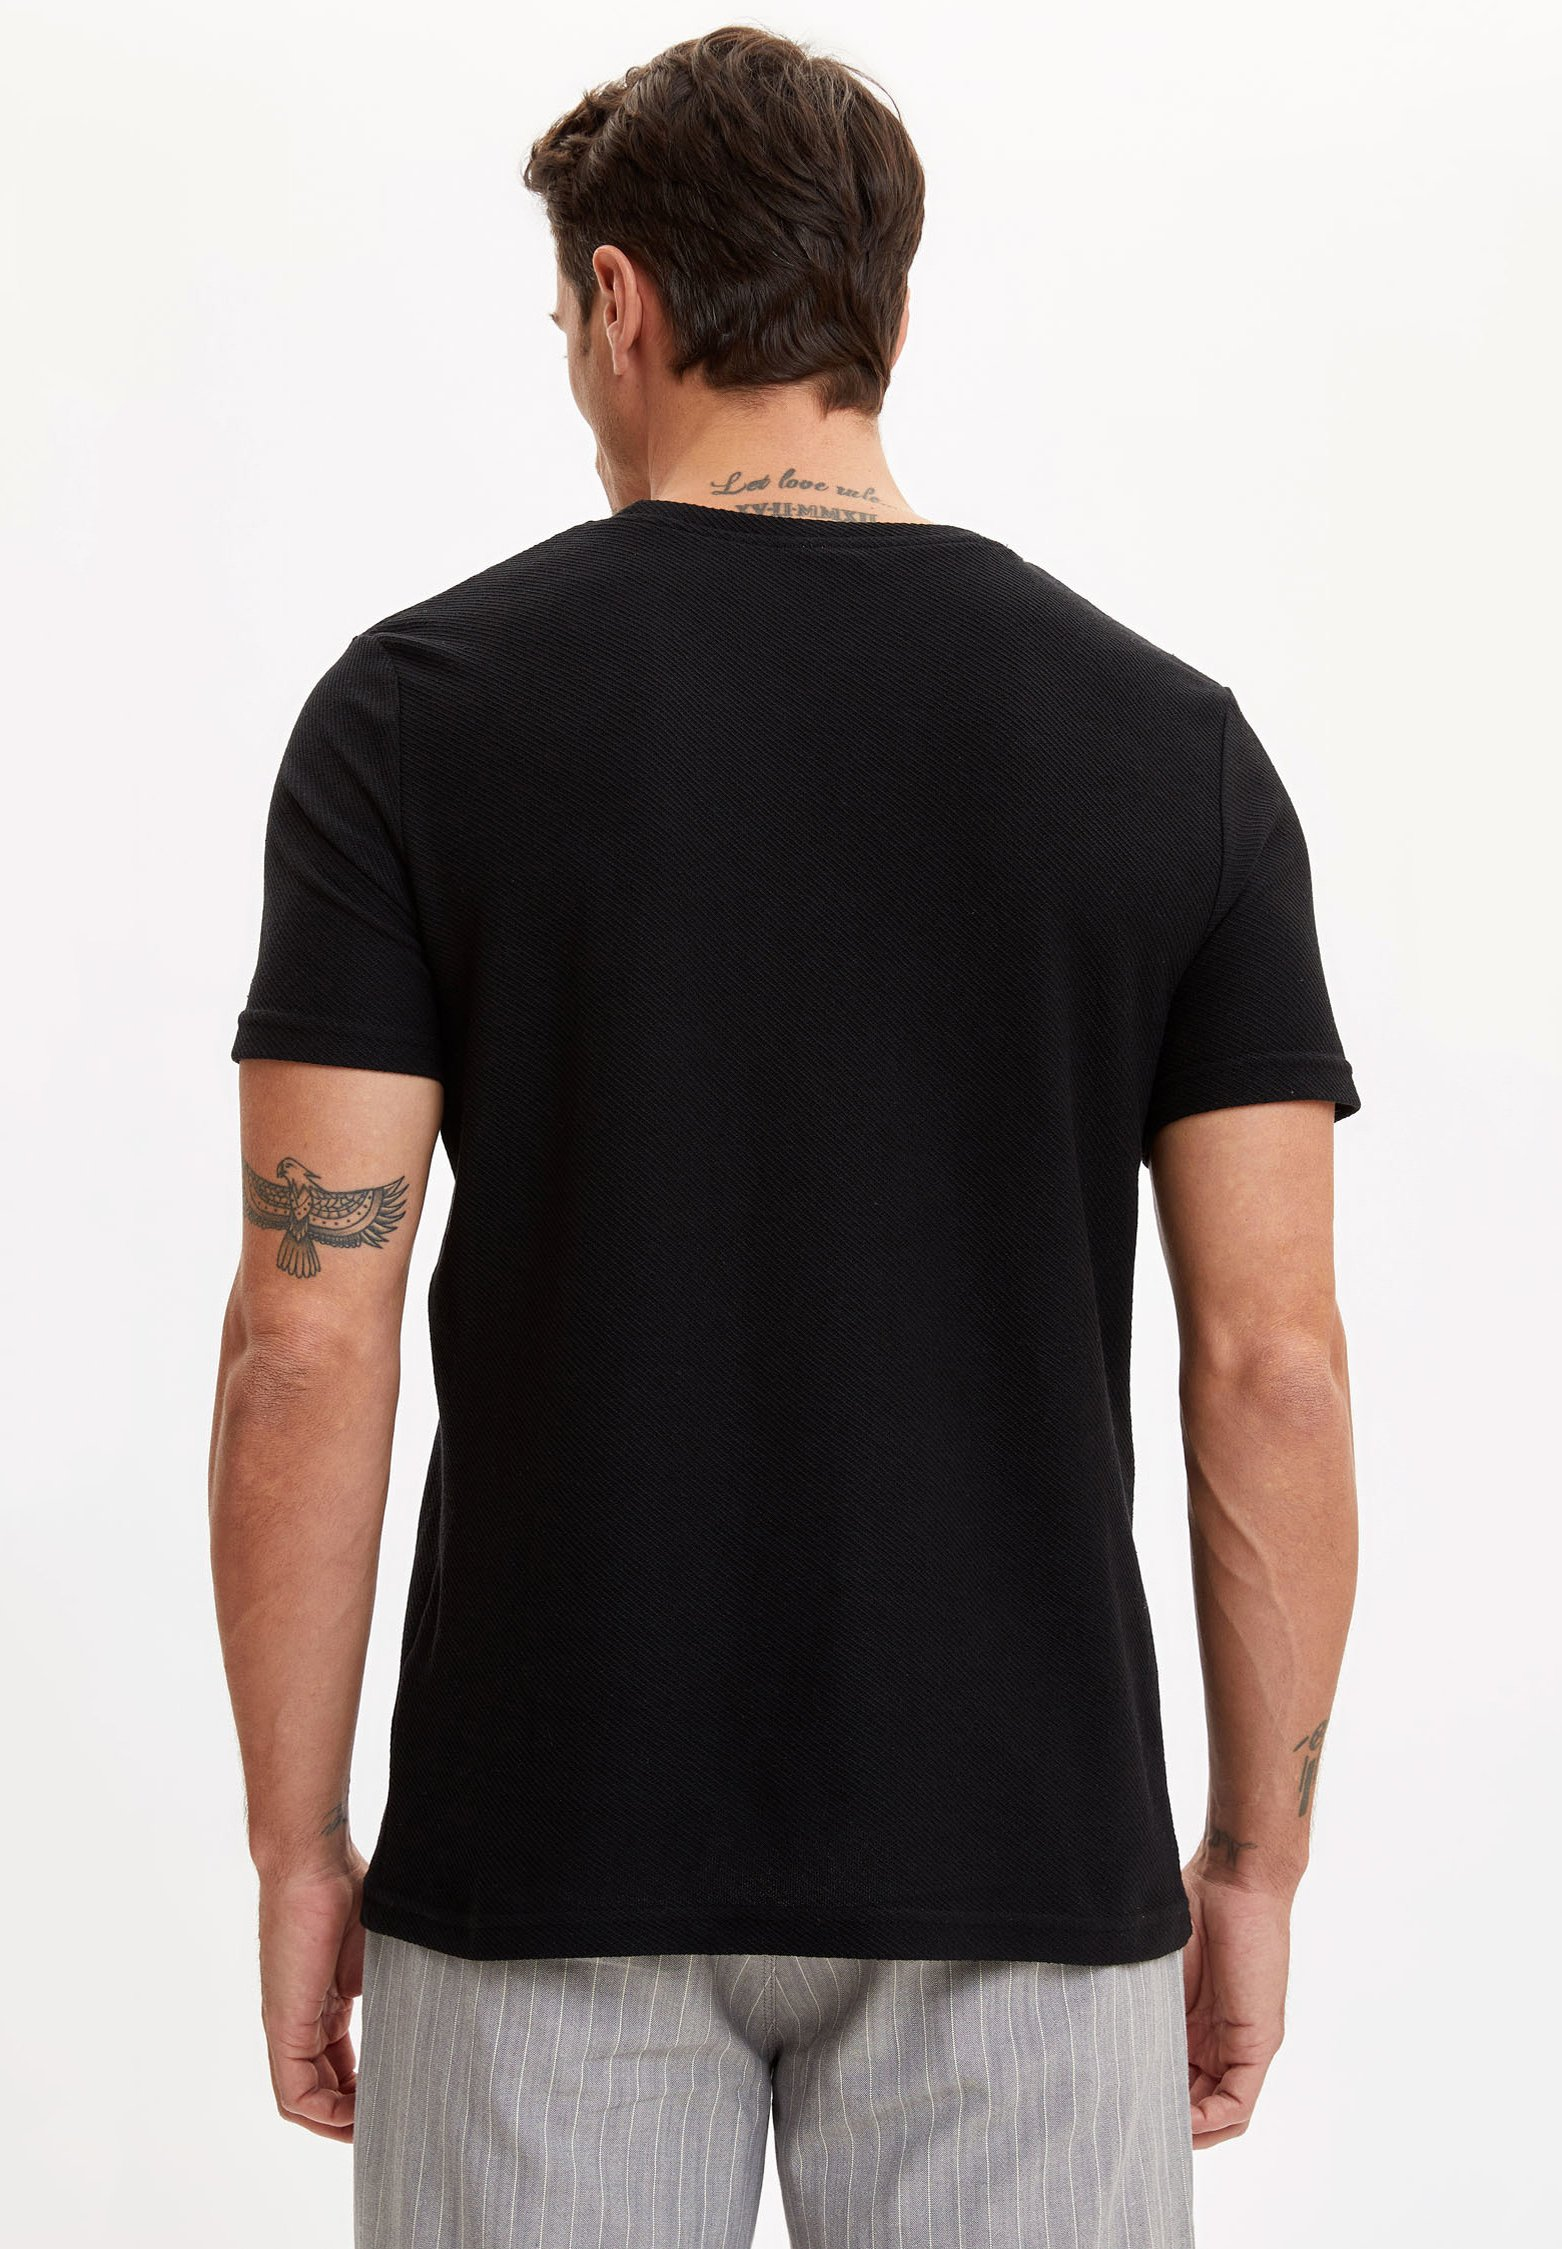 DeFacto Basic T-shirt - black 2utGl